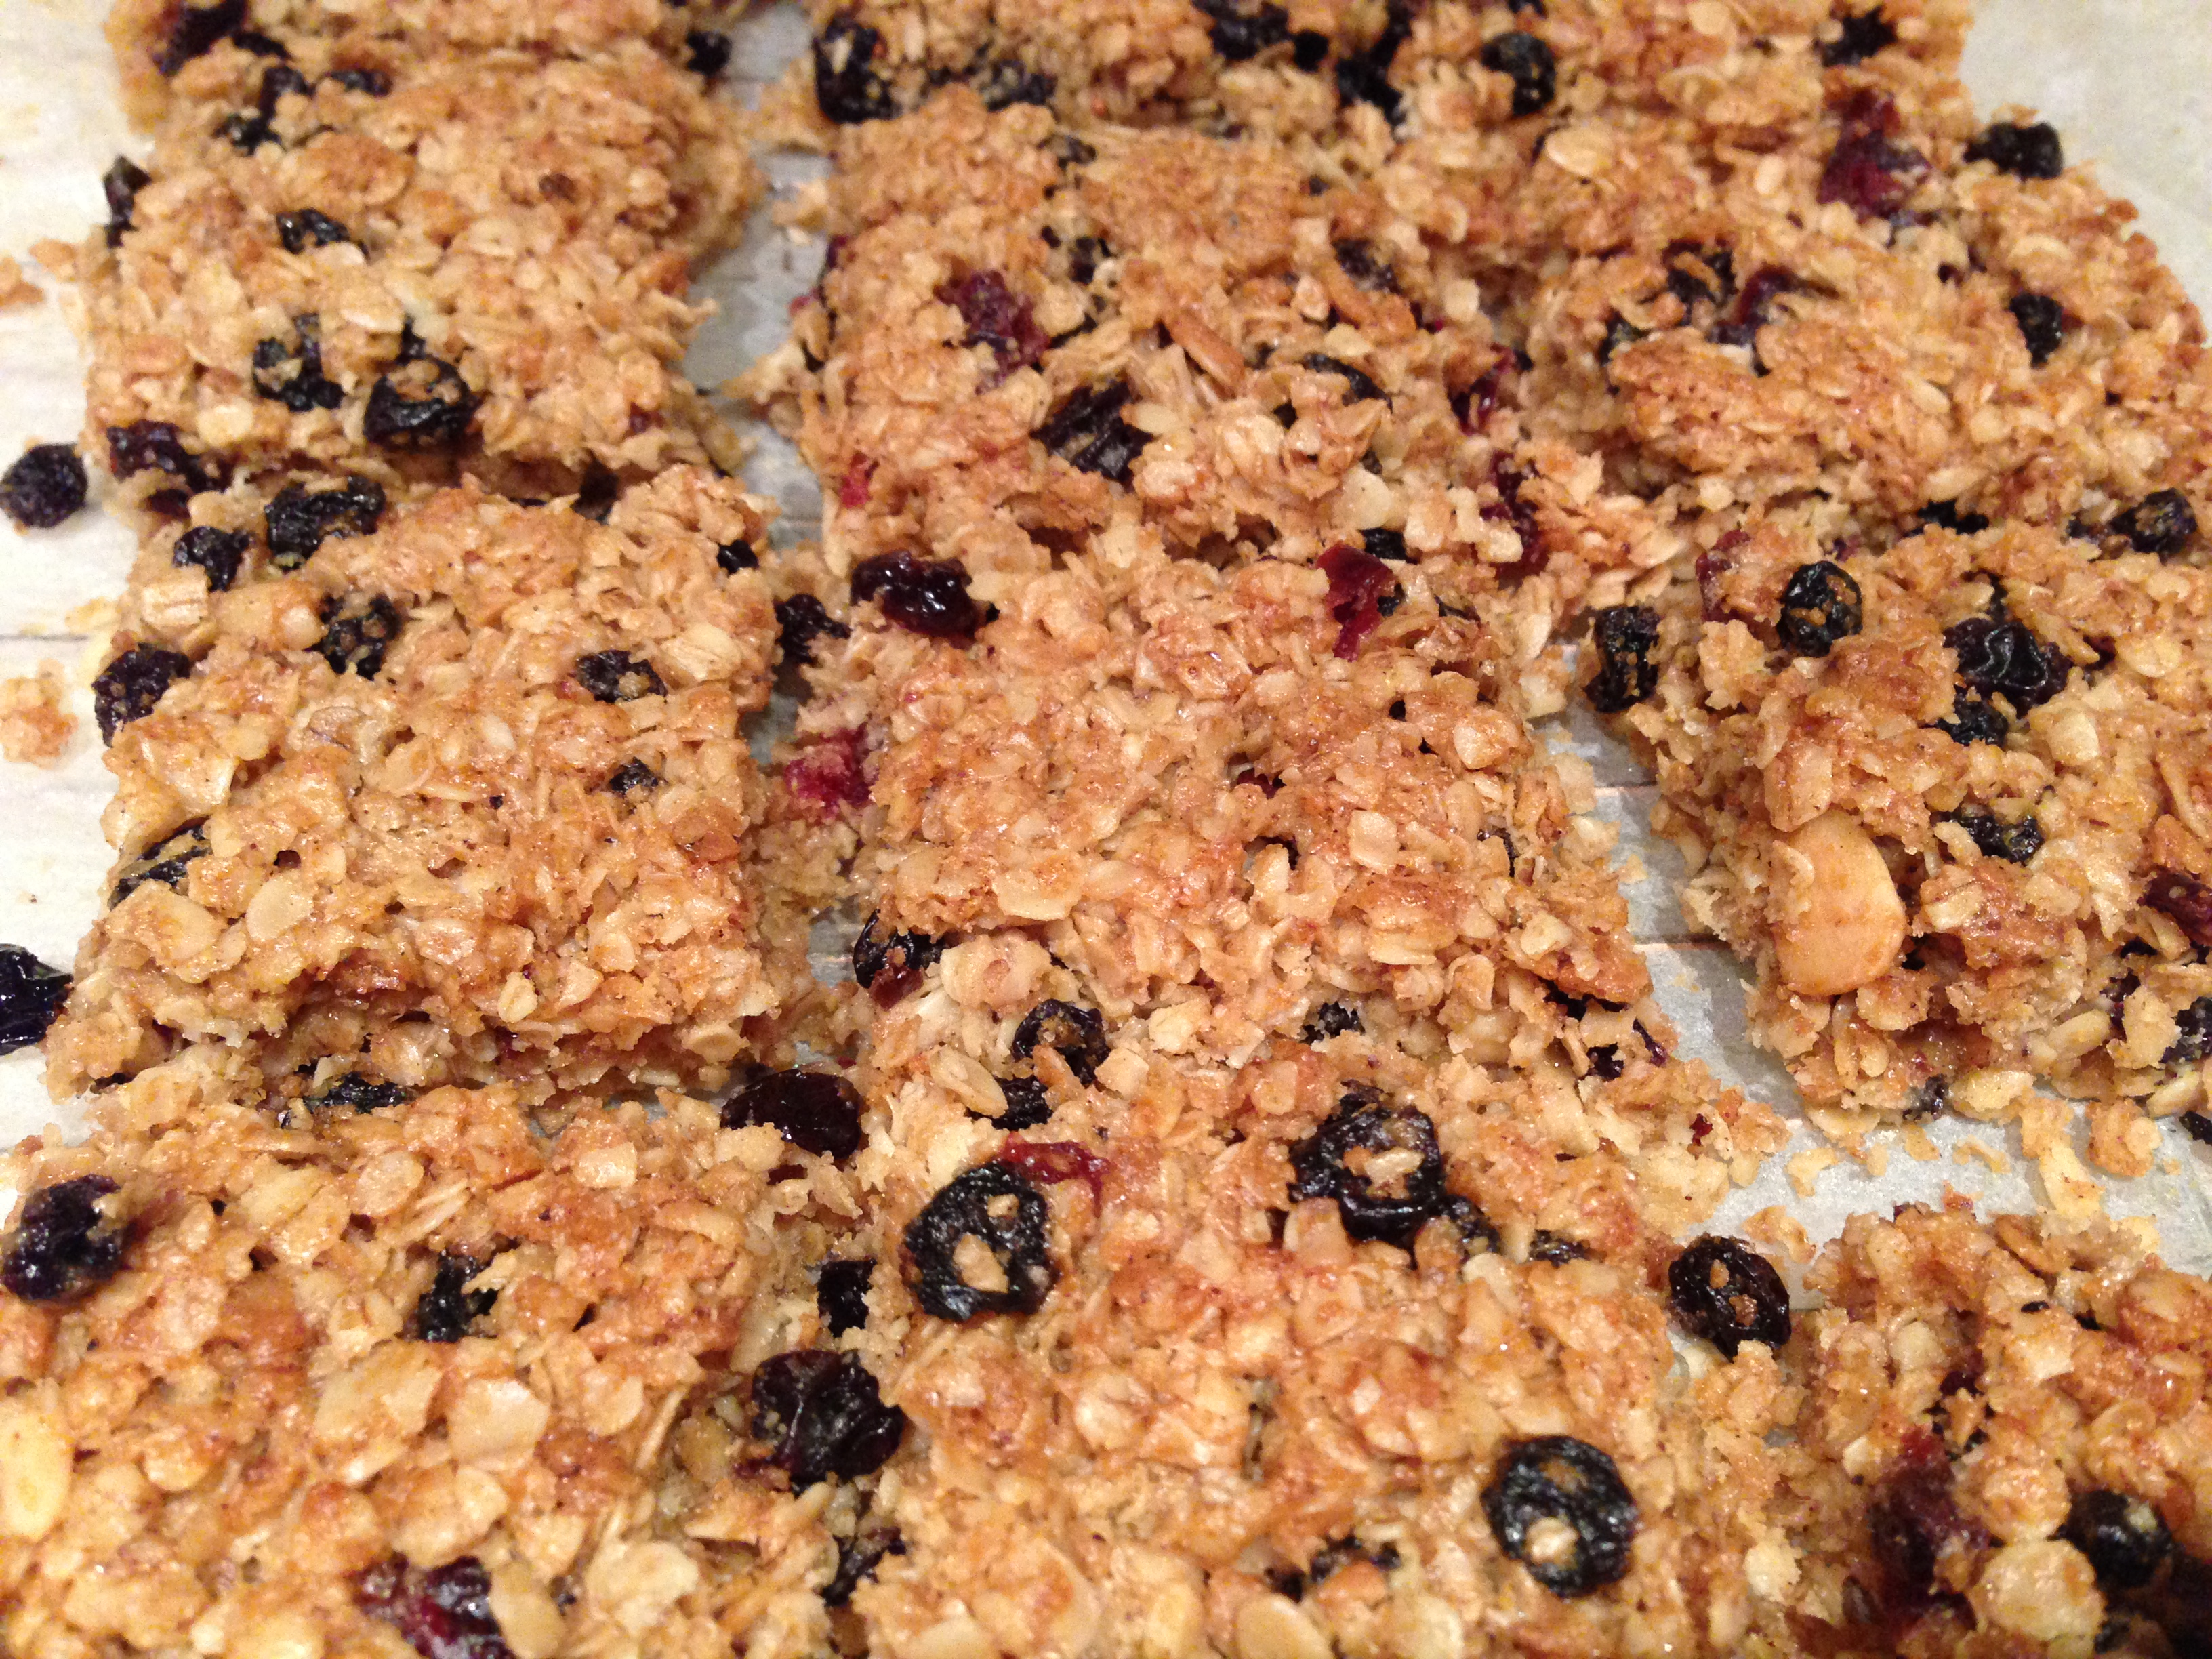 Recipe for Oat Flapjacks with dried fruit